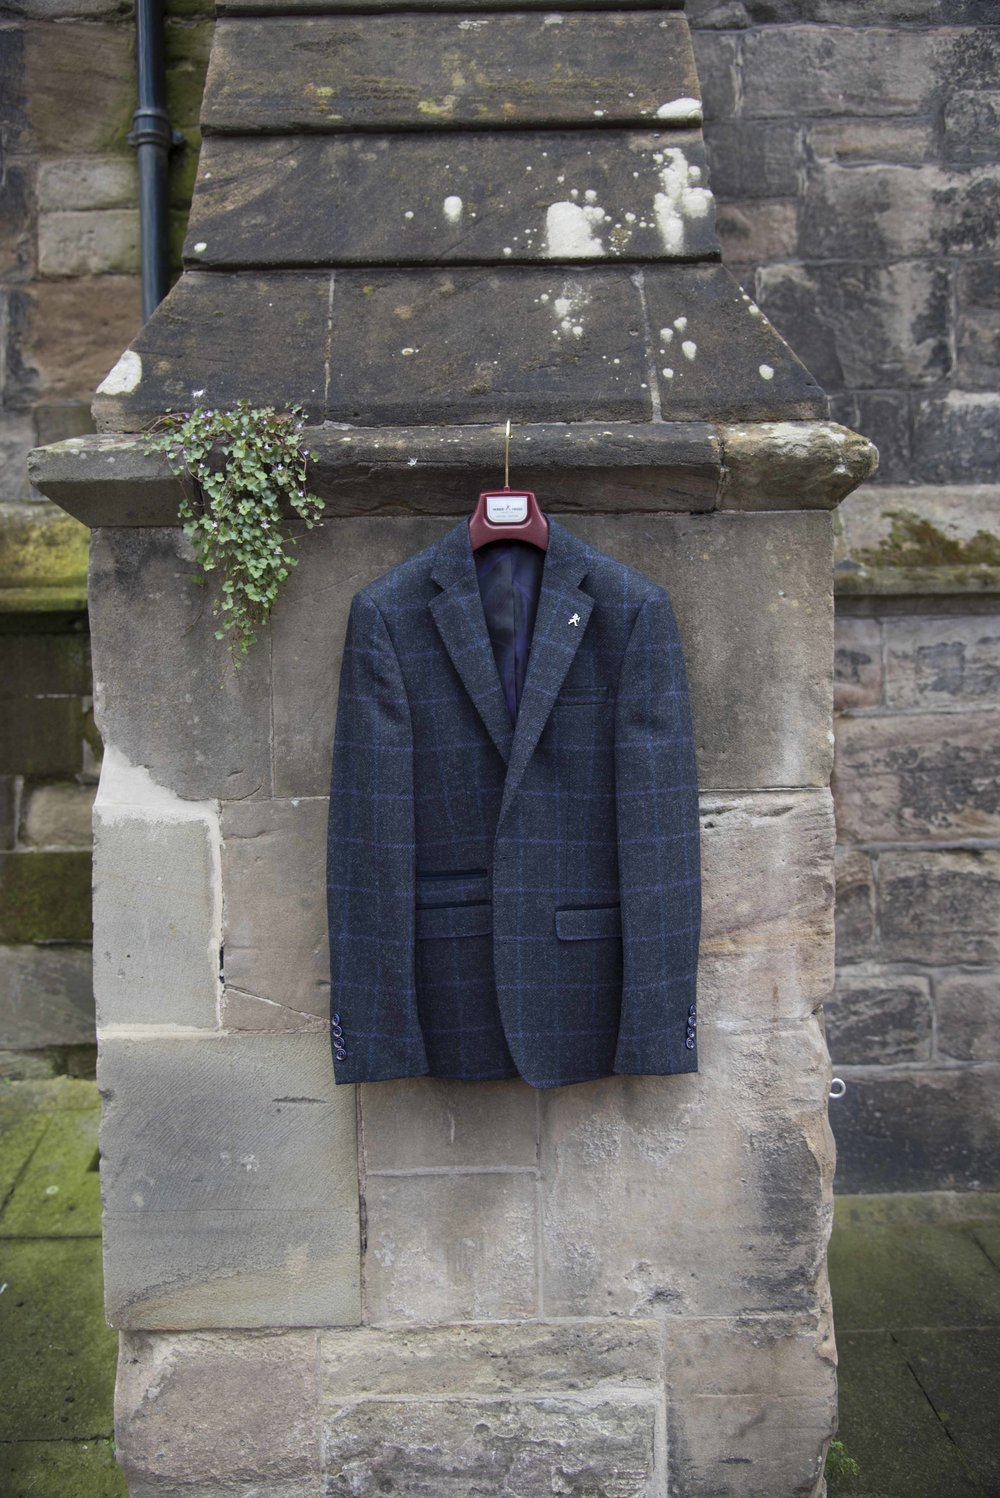 Man's jacket hanging outside a church in Hereford